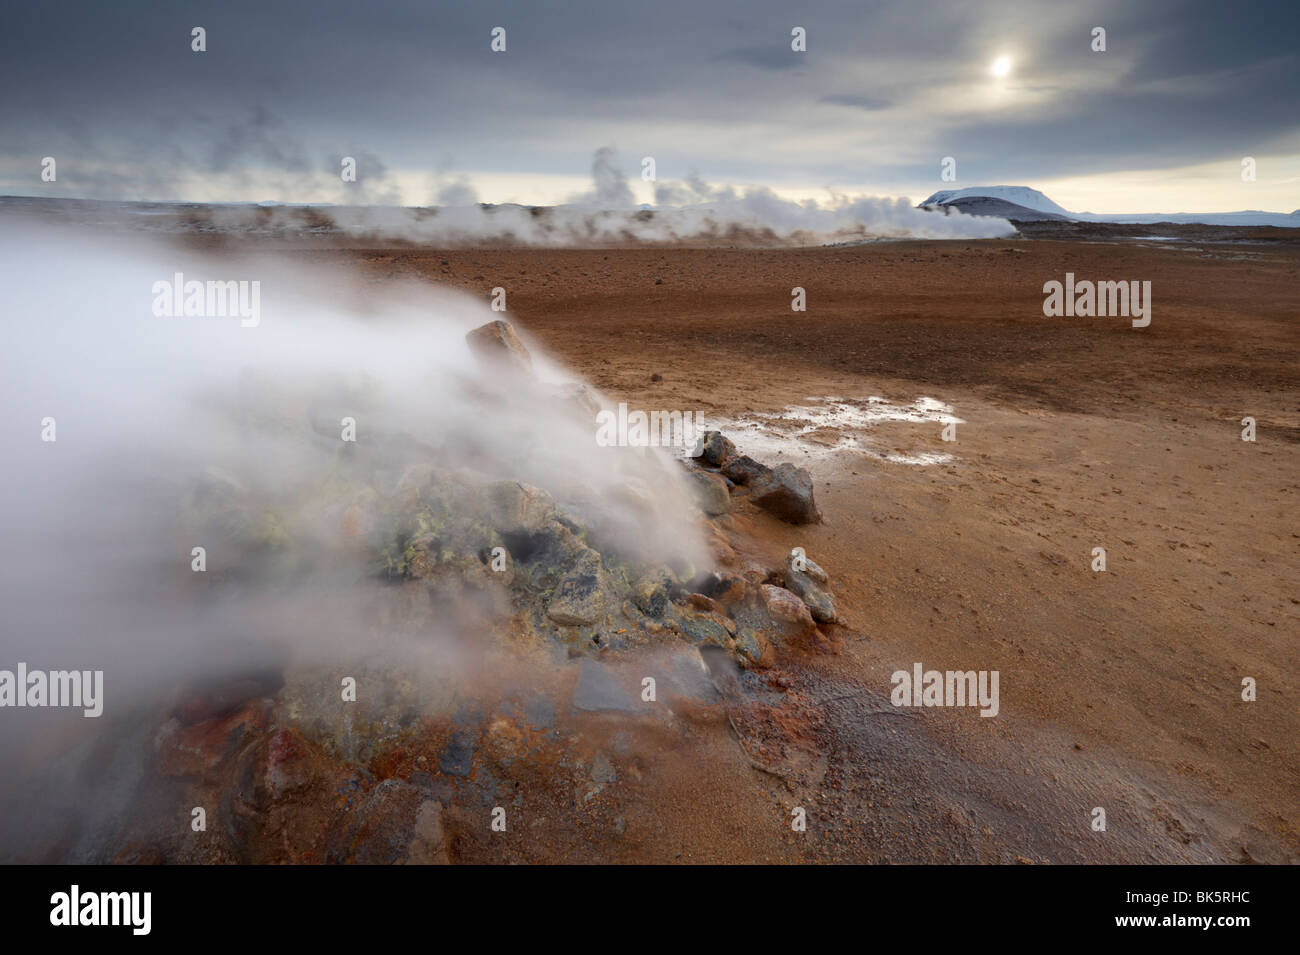 Steam vent at Namaskard geothermal area, Mount Burfell, 935m, behind, near Lake Myvatn and Reykjahlid, Iceland - Stock Image